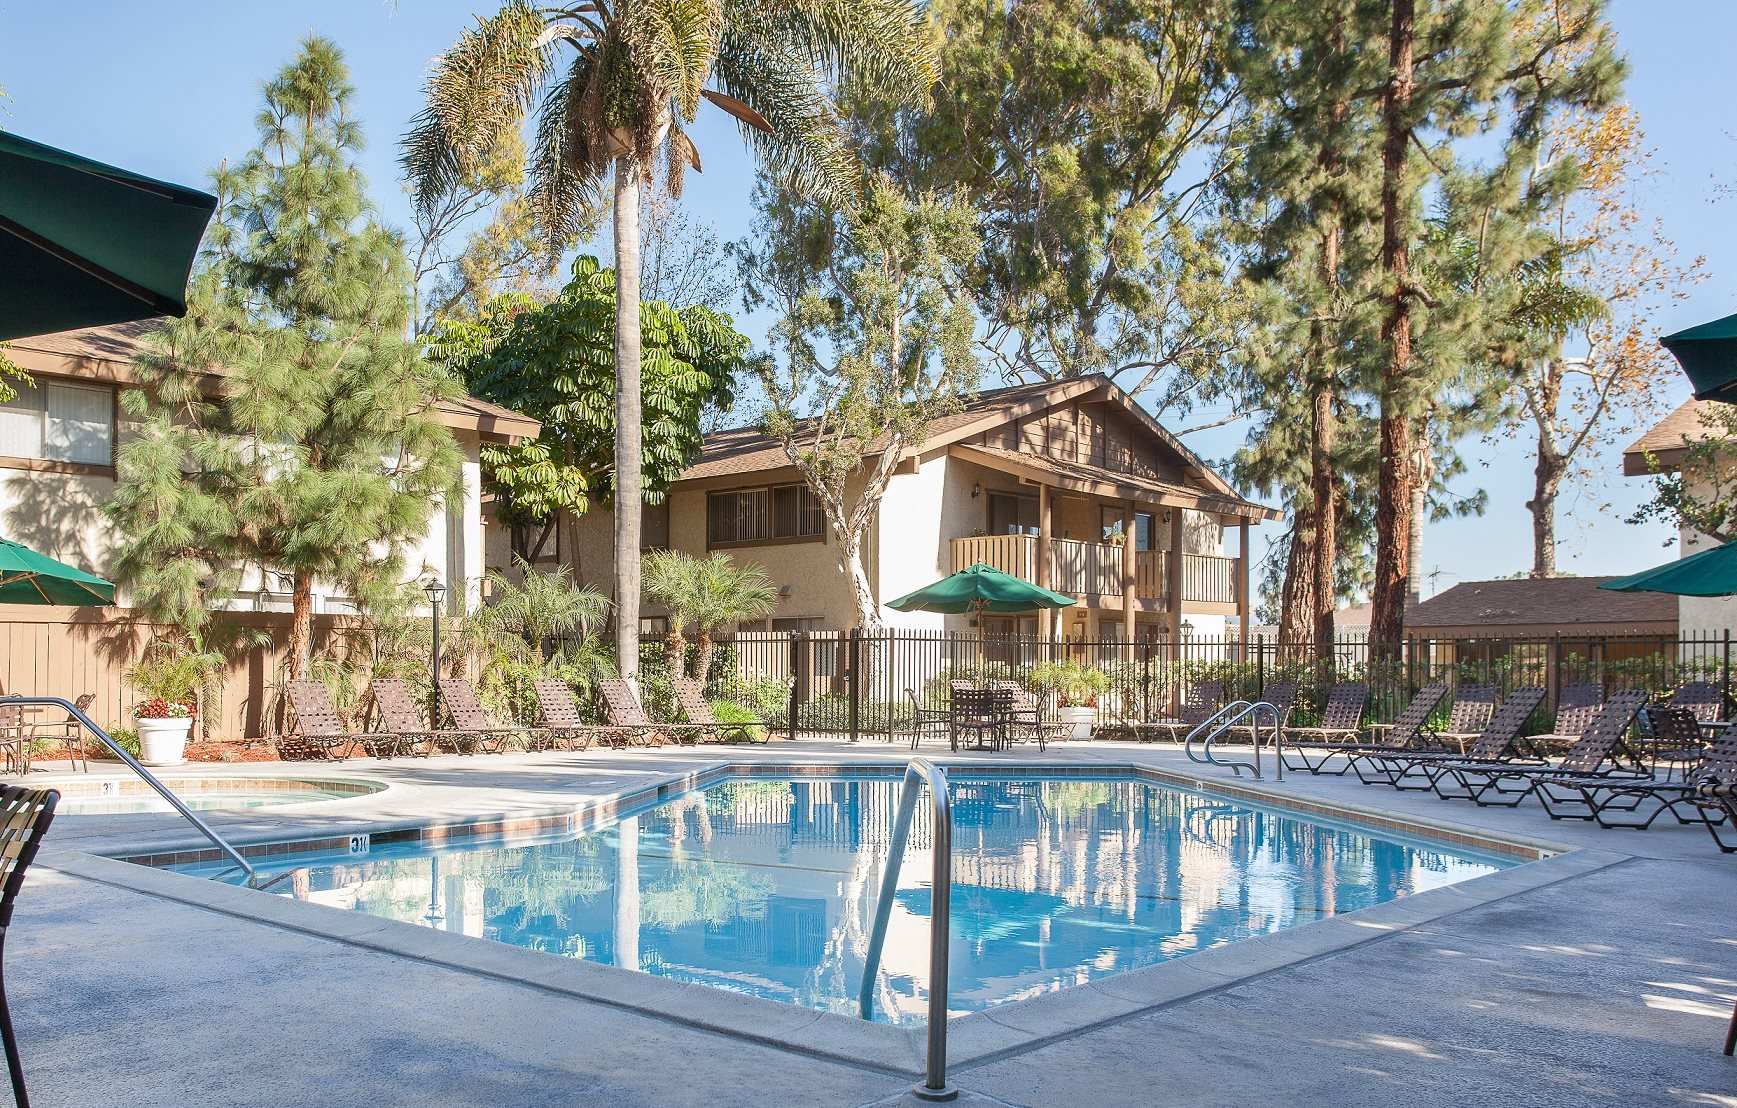 Walnut east apartments in tustin ca for 3 bedroom apartments in tustin ca